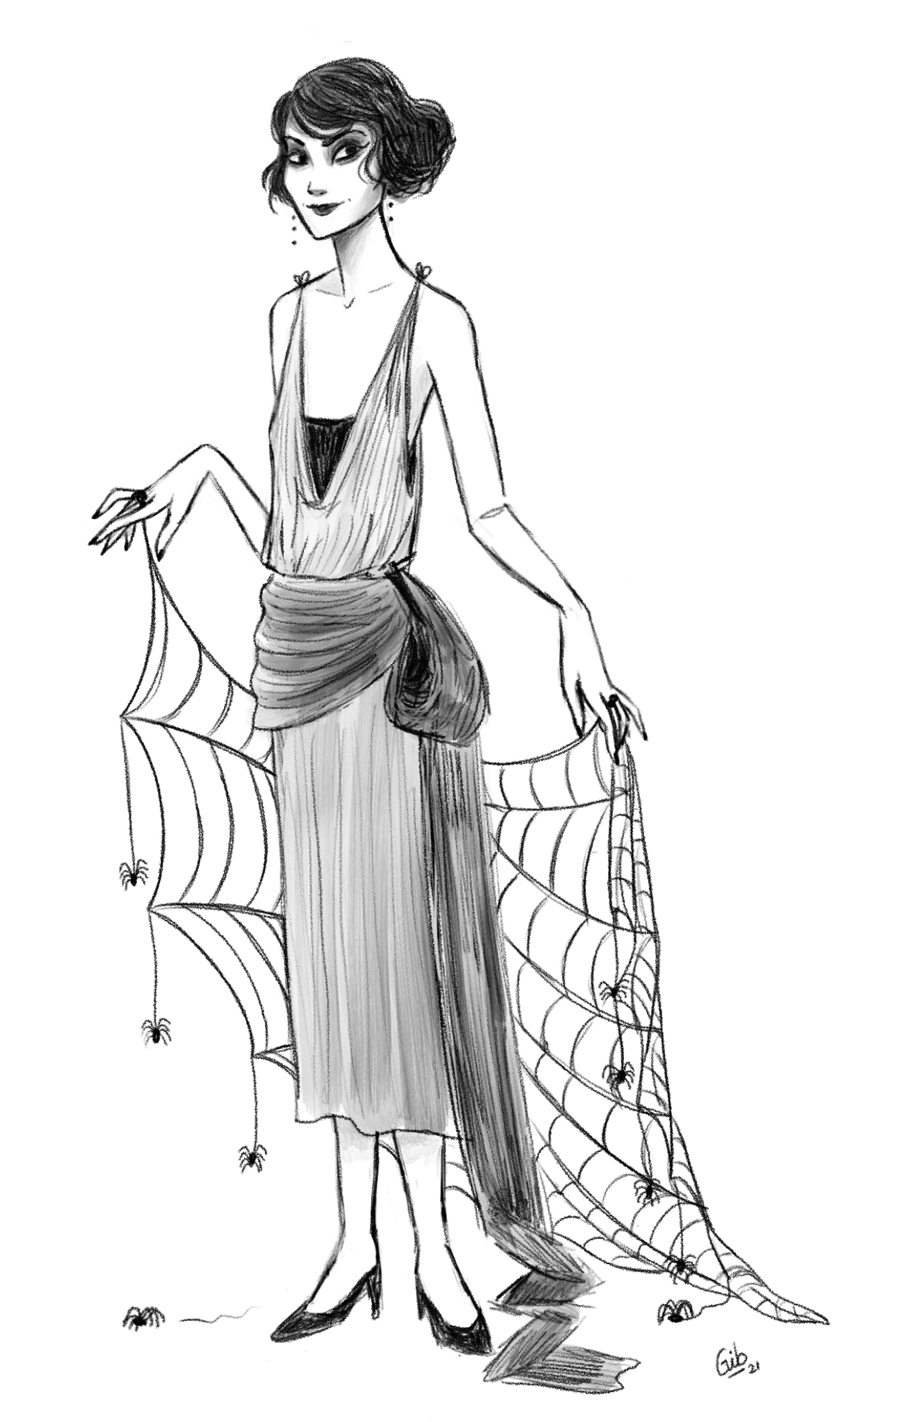 Draw this in your style Ginny Robbins illustratrice toulouse dessin crayonné